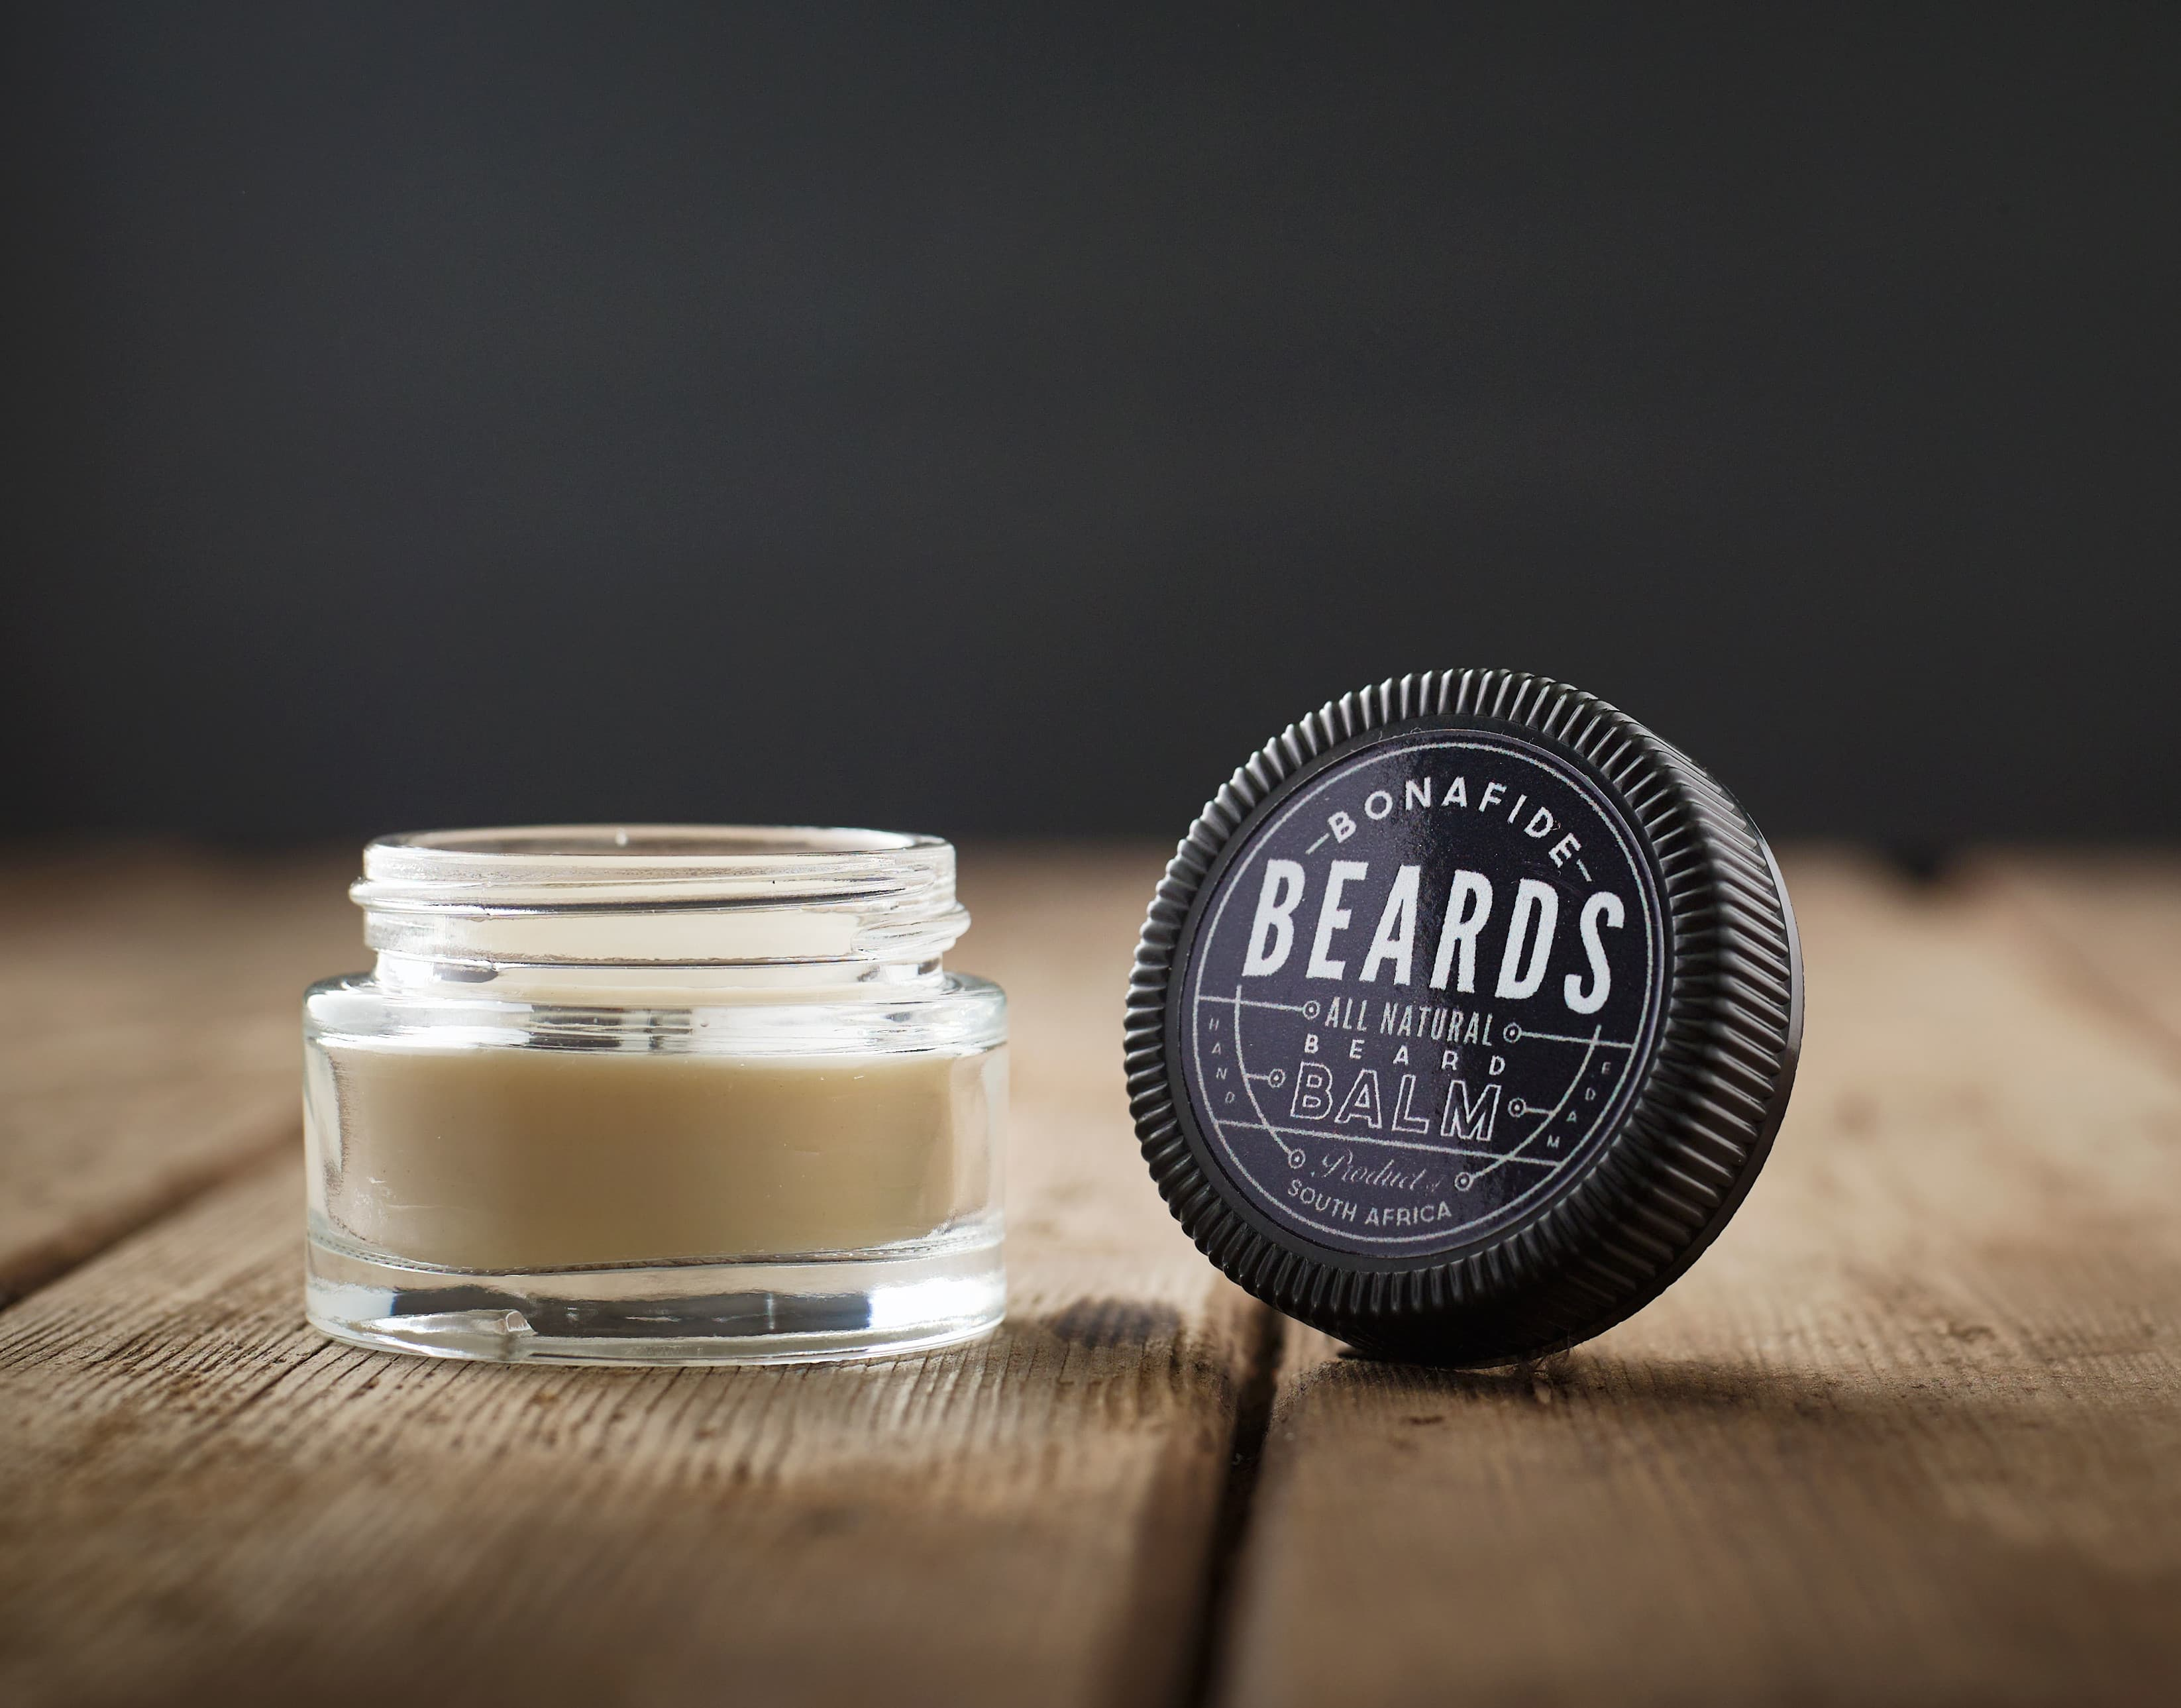 mustache wax and beard balm photo - 1